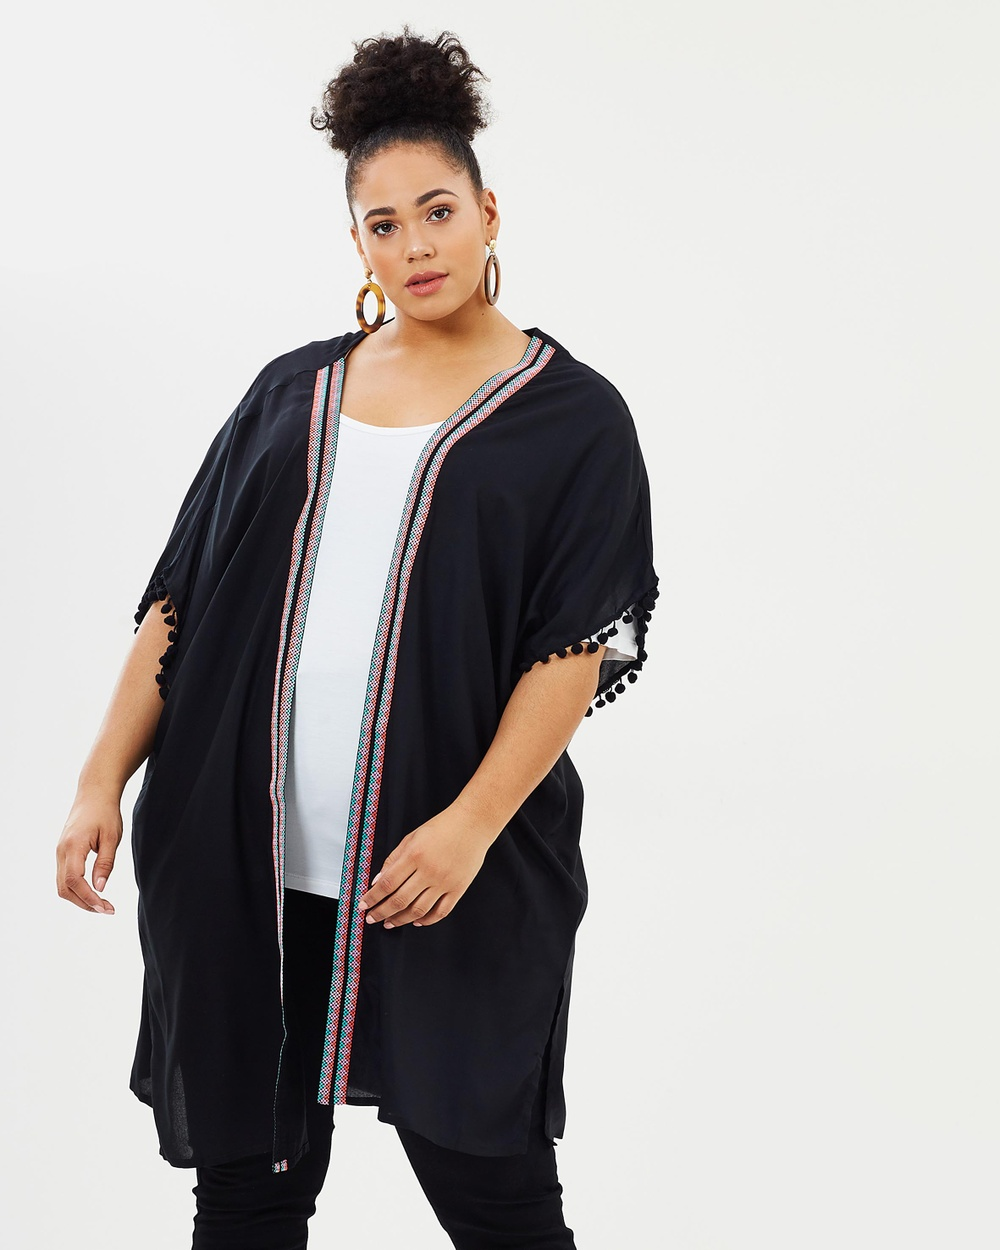 EVANS Tape Pom Cover Up Kimono Swimwear Black Tape Pom Cover-Up Kimono